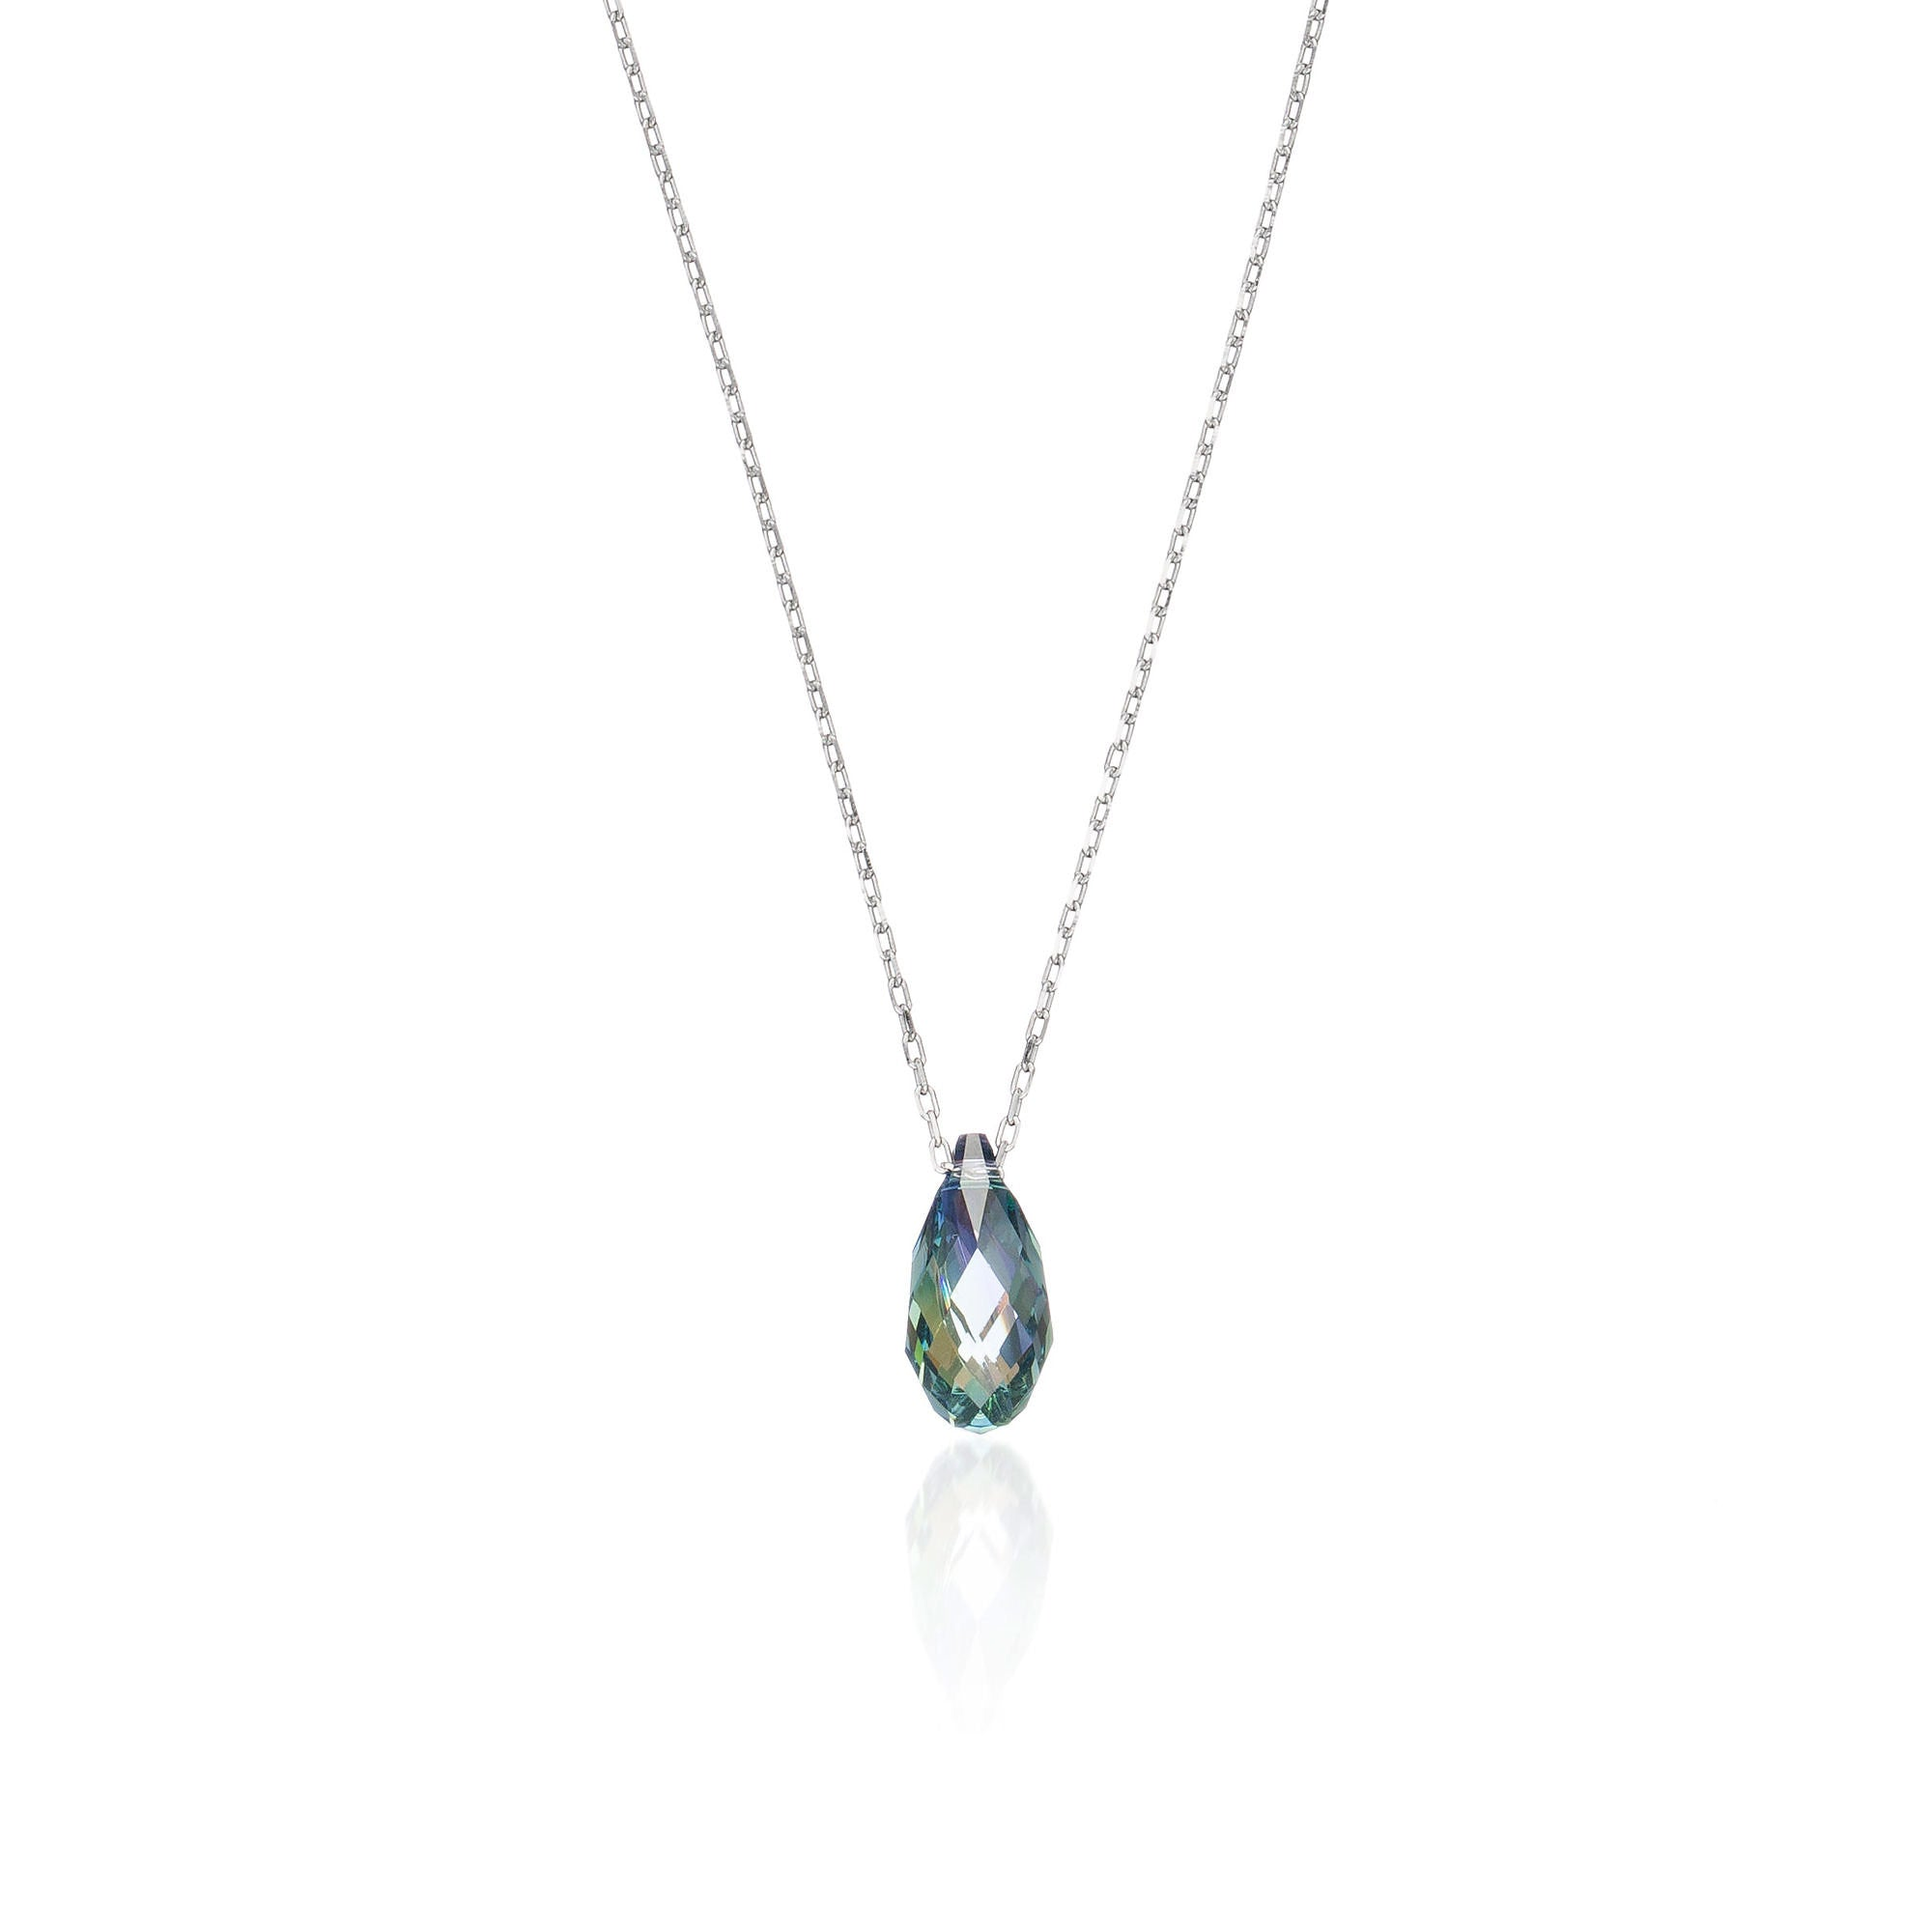 Tonal Blue Crystal Drop Necklace